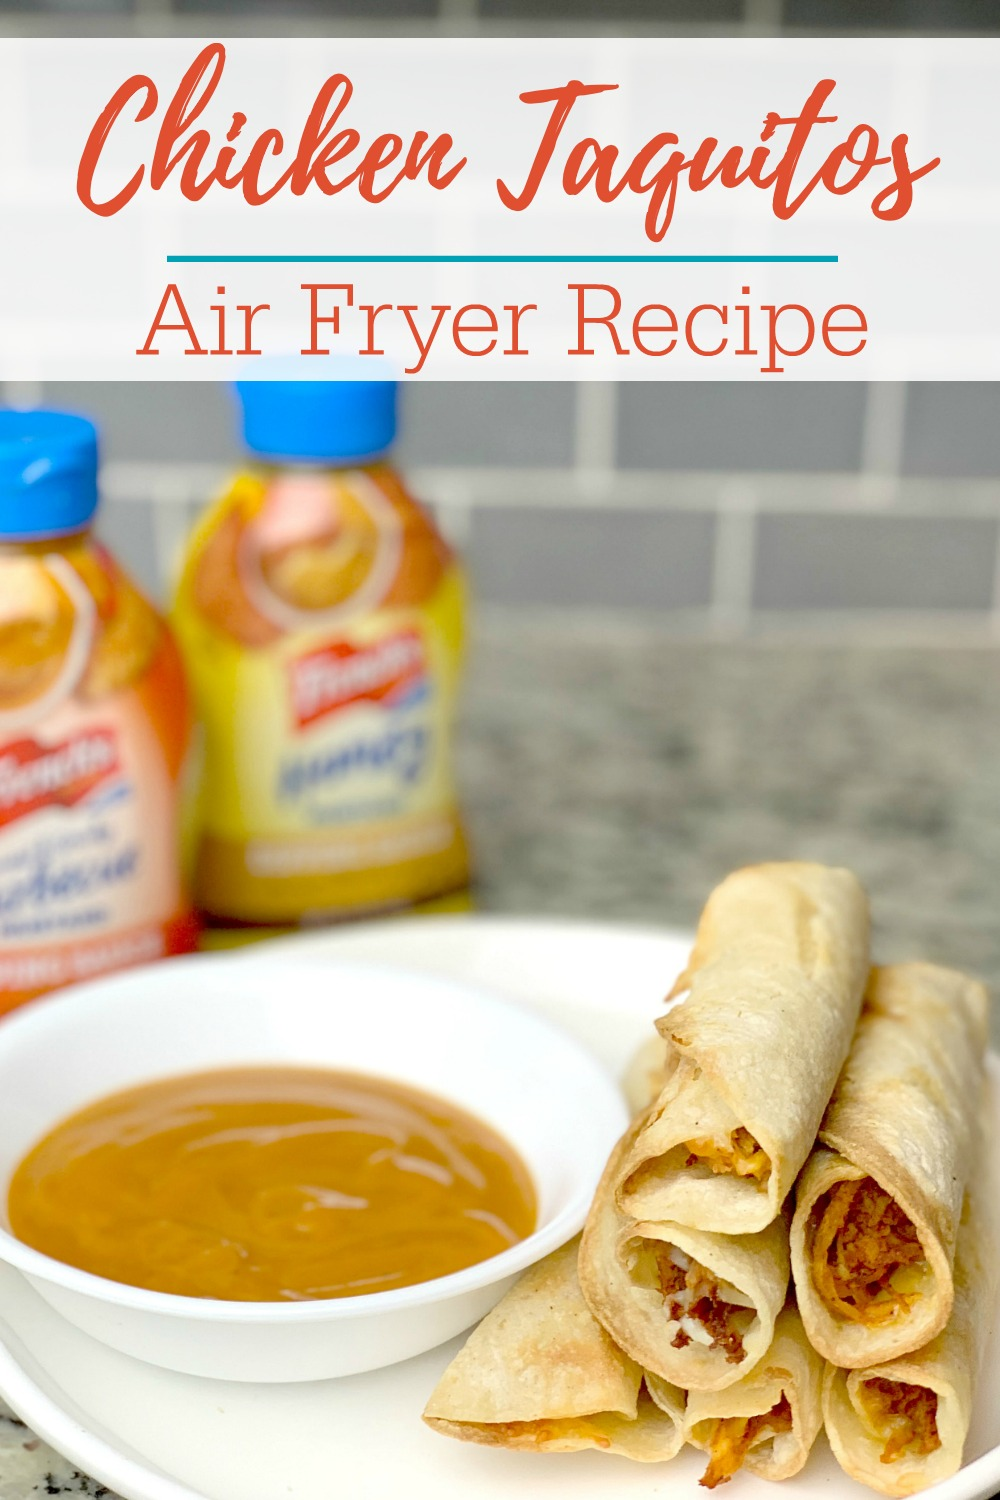 Homemade Air Fryer Chicken Taquitos Recipe